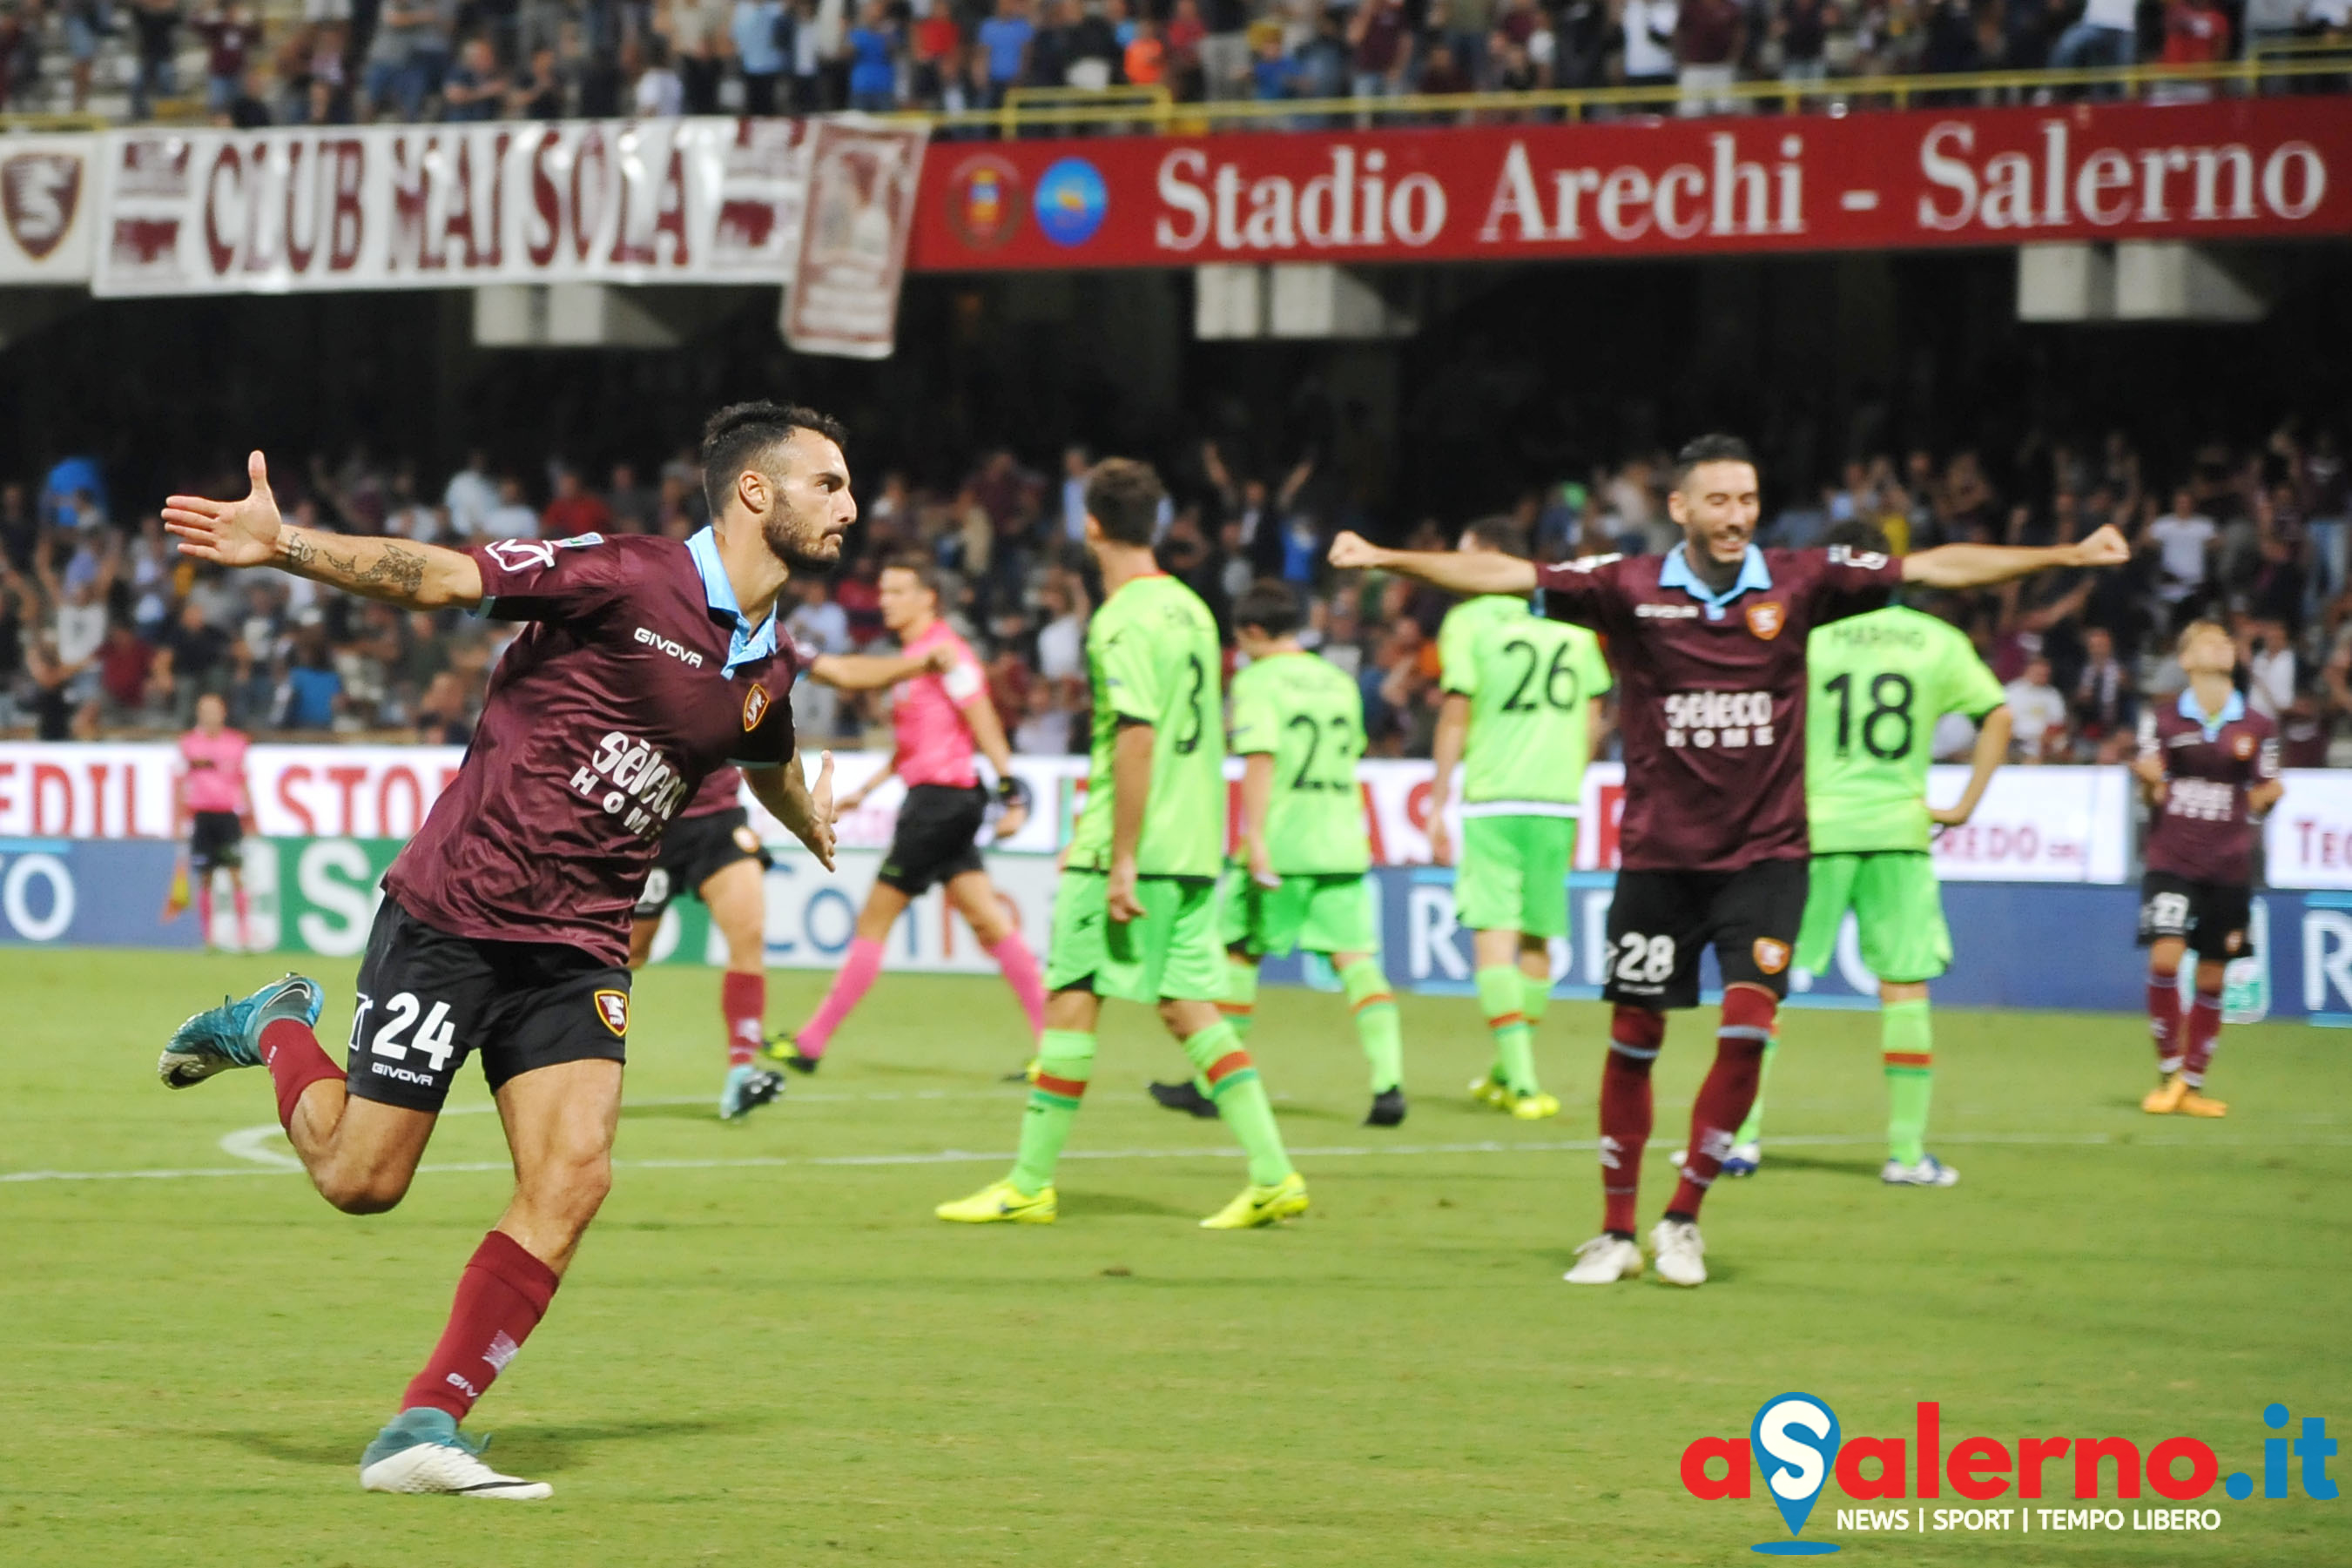 Salernitana (9)